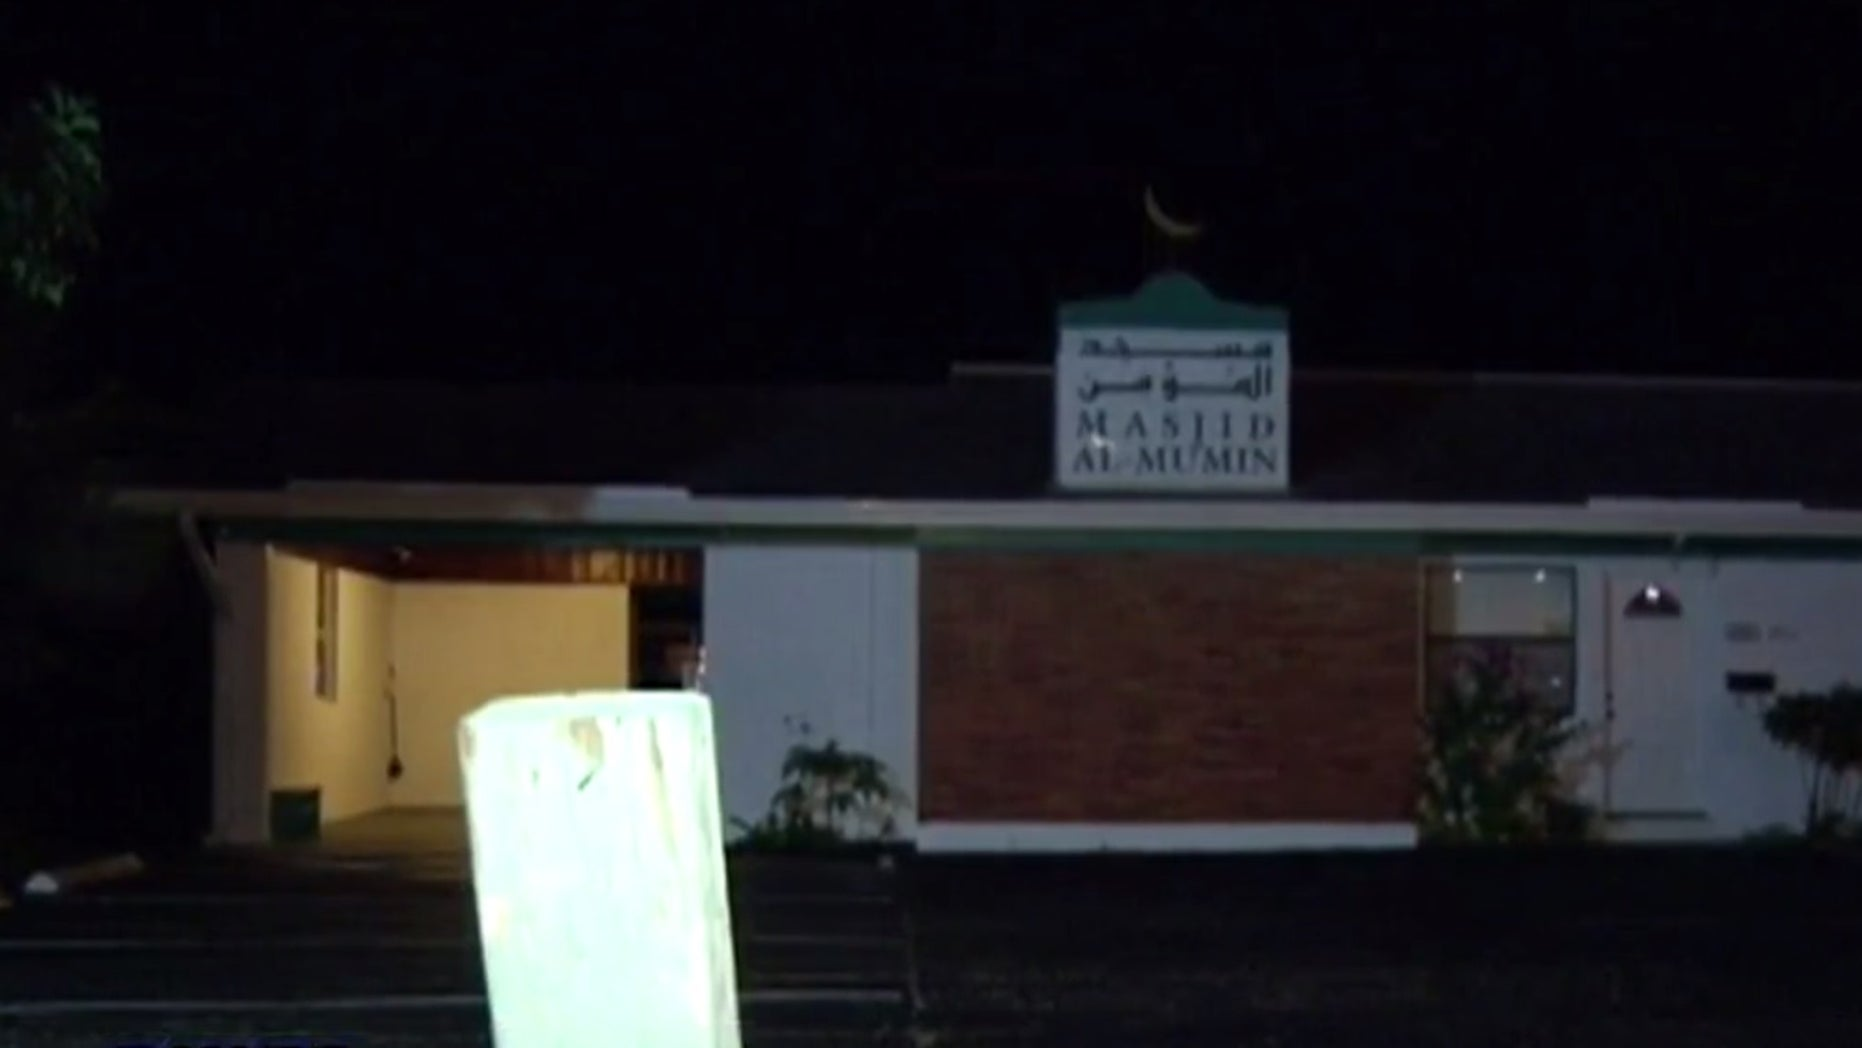 The Islamic Society of Central Florida Masjid Al-Mumin Mosque in Titusville.